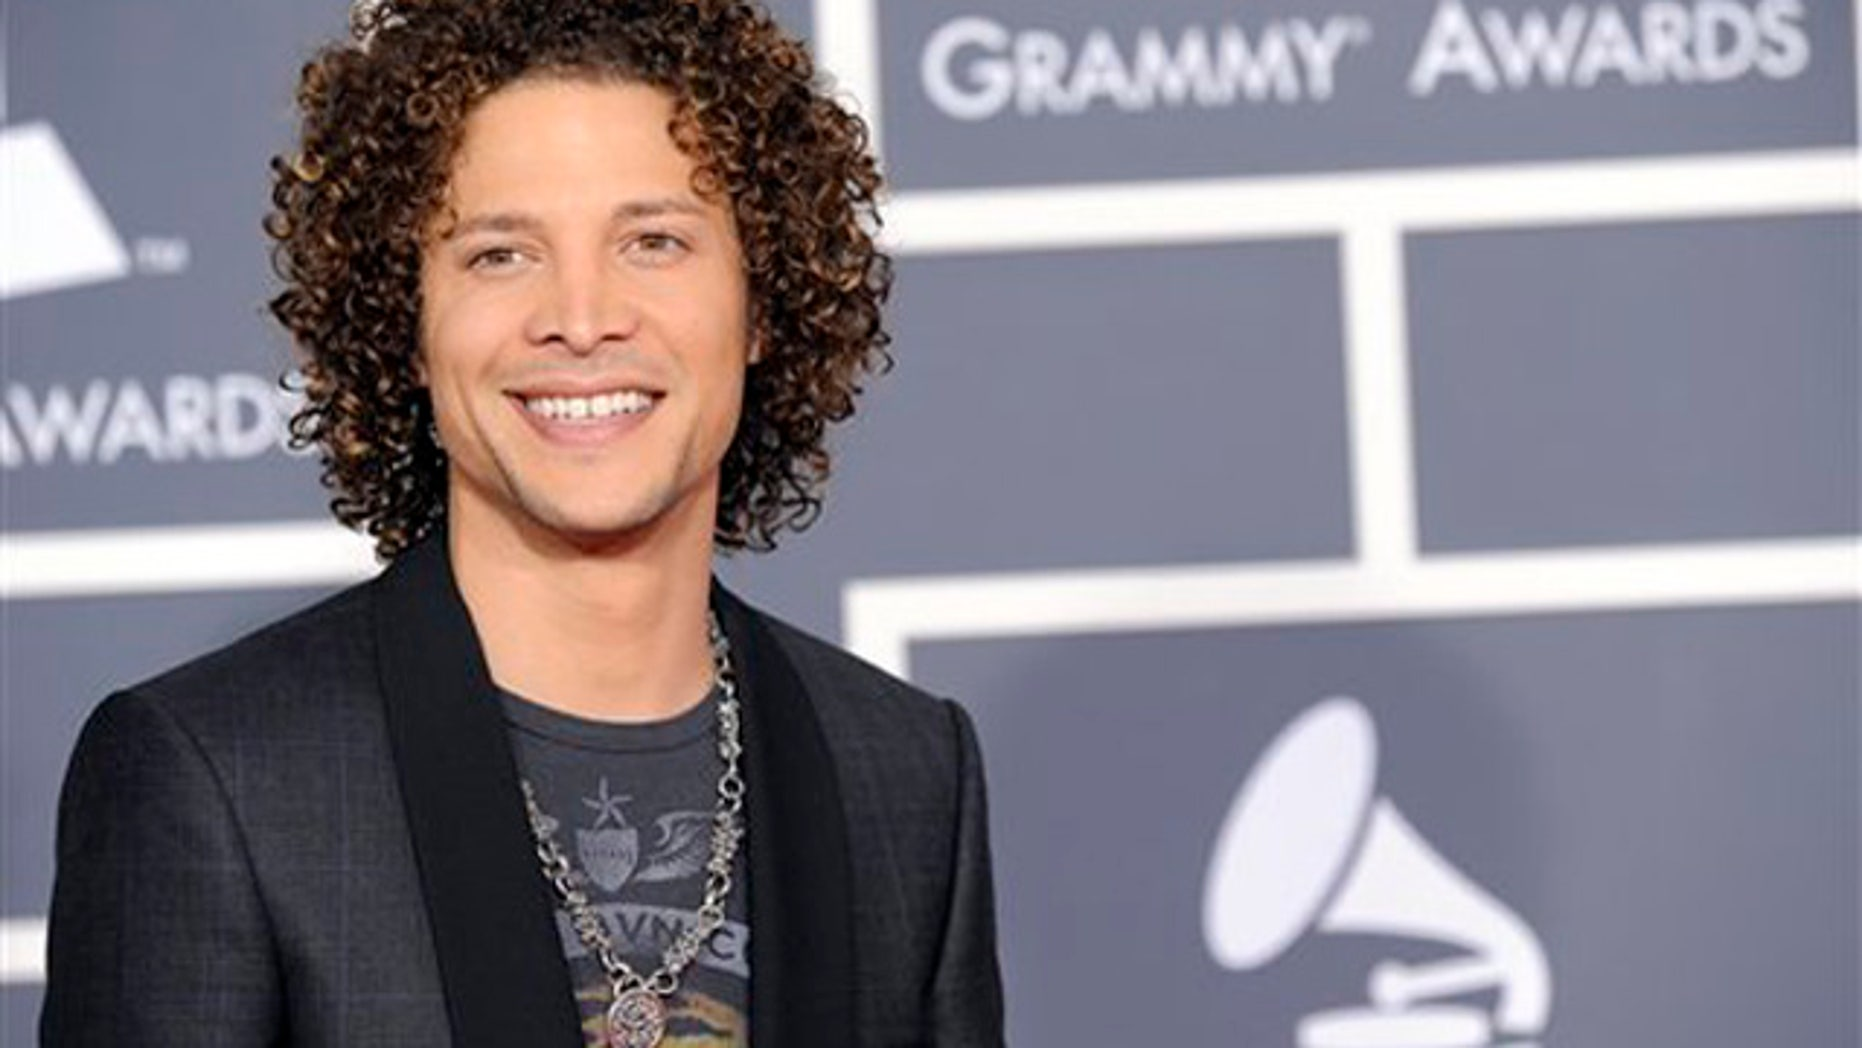 Justin Guarini arrives at the Grammy Awards on Sunday, Jan. 31, 2010, in Los Angeles. (AP Photo/Chris Pizzello)